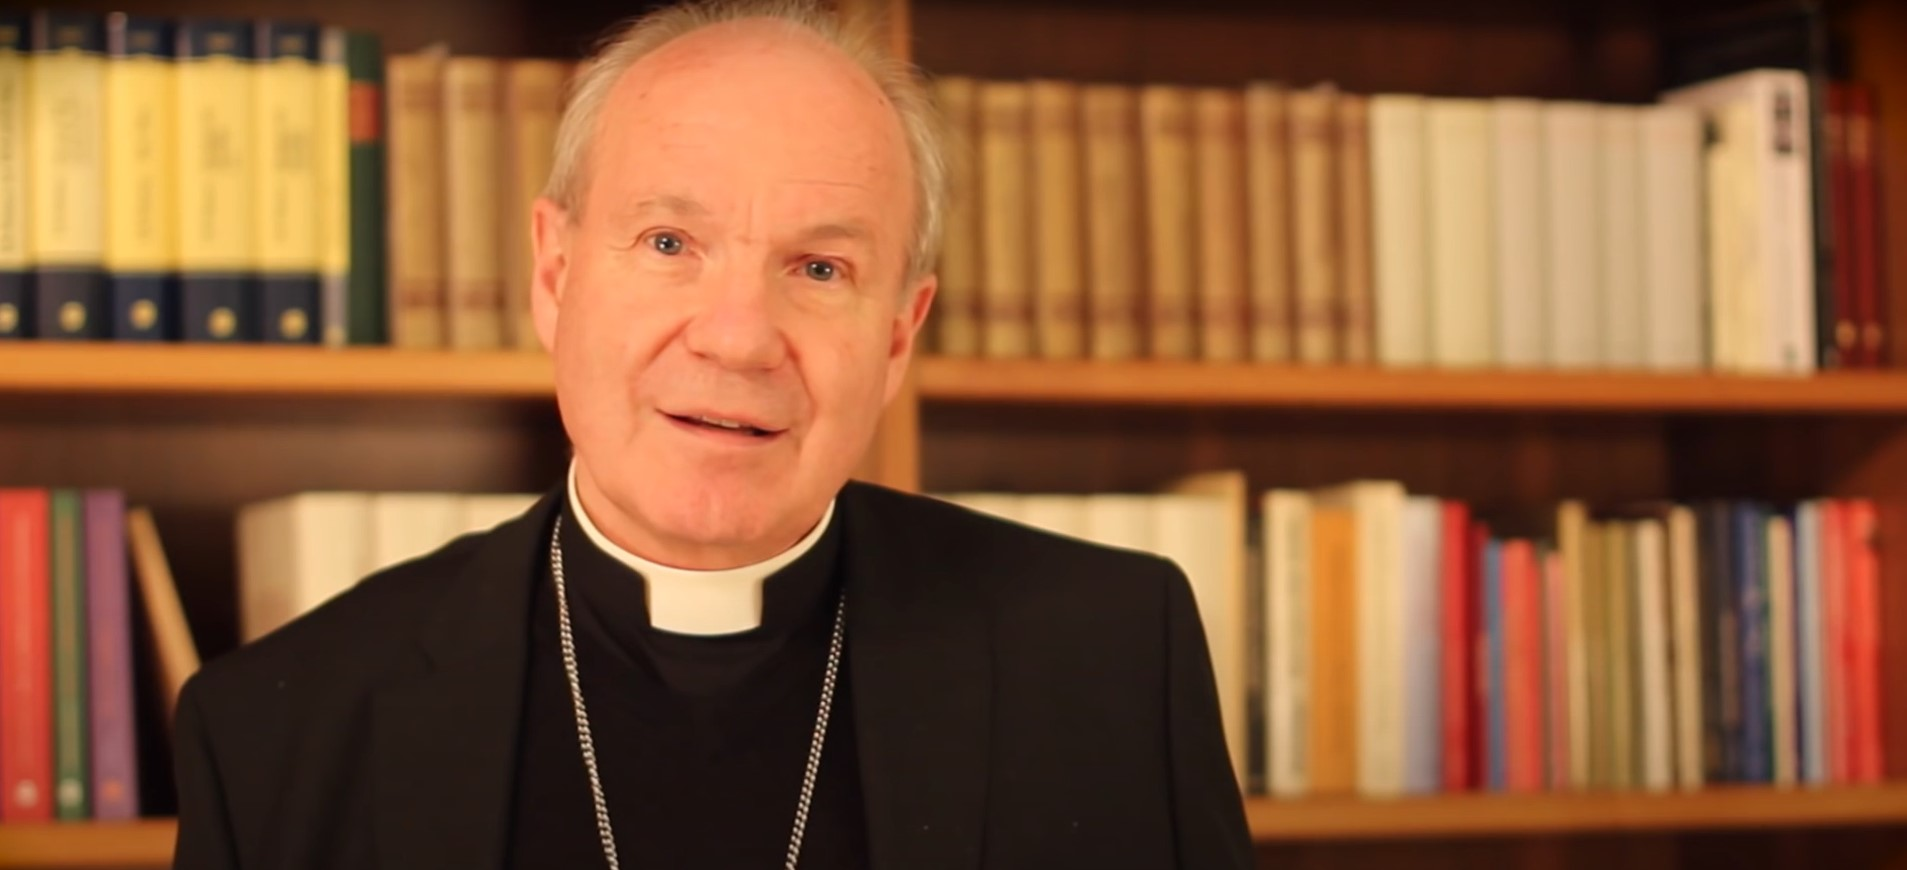 Cardinal Christoph Schönborn: What a warning against the power of lies!